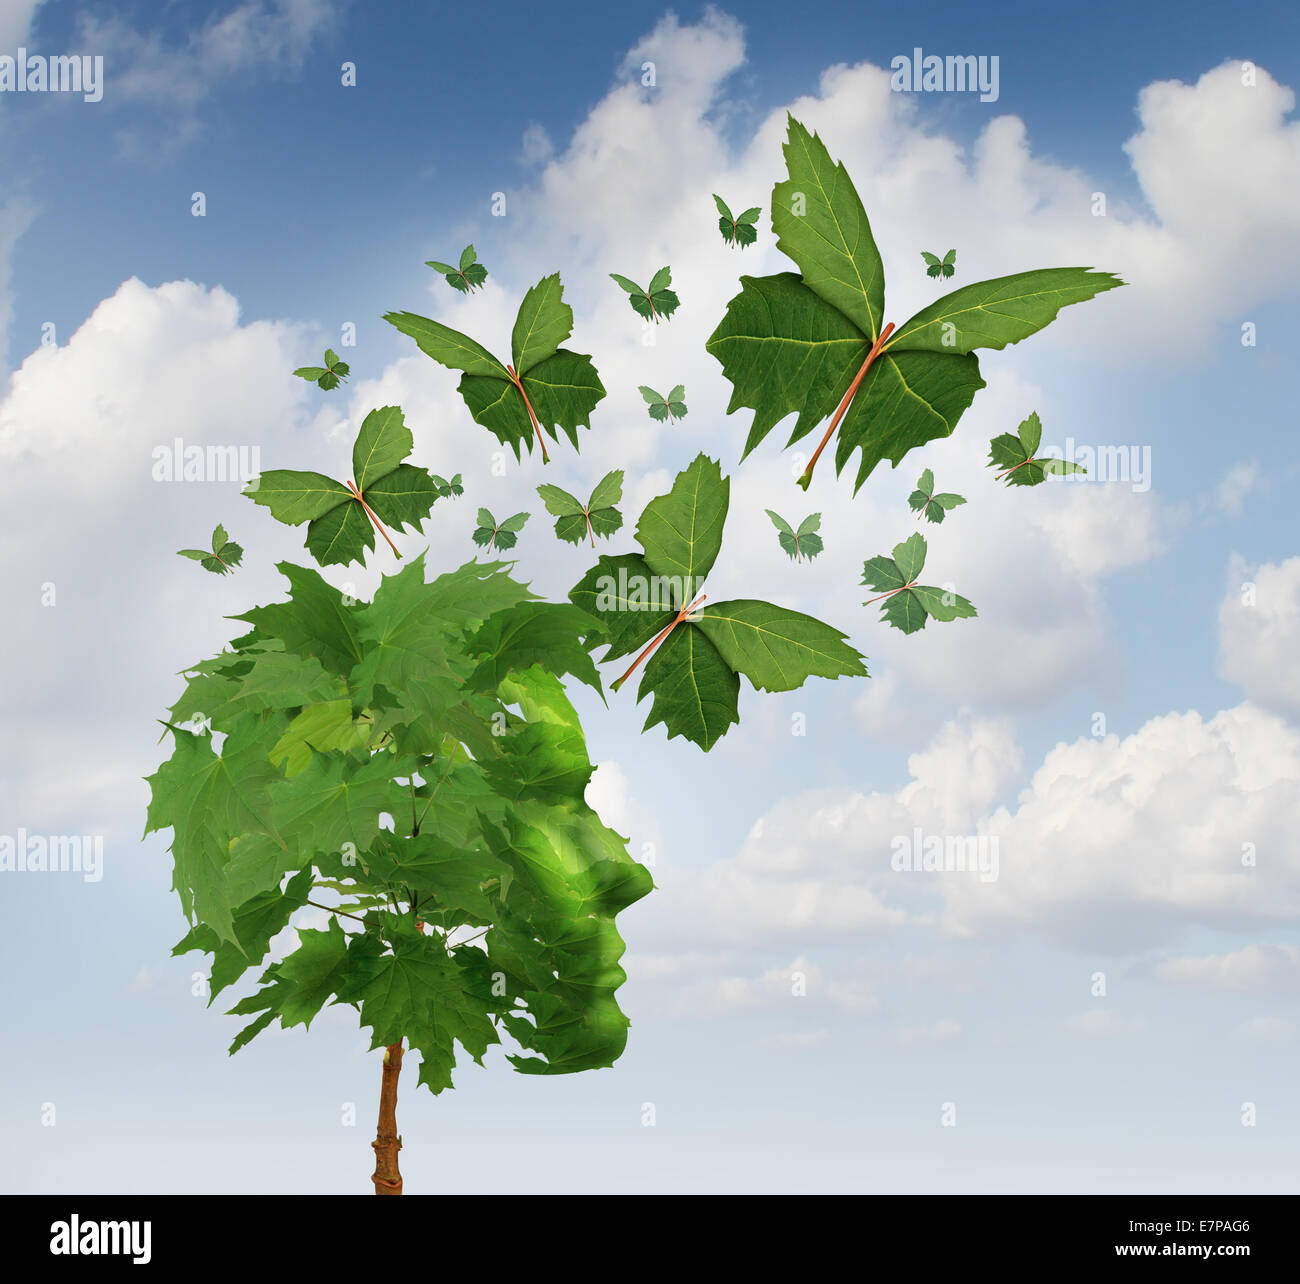 Creative communication et marketing intelligent concept comme un arbre en forme de tête humaine avec le vol Photo Stock